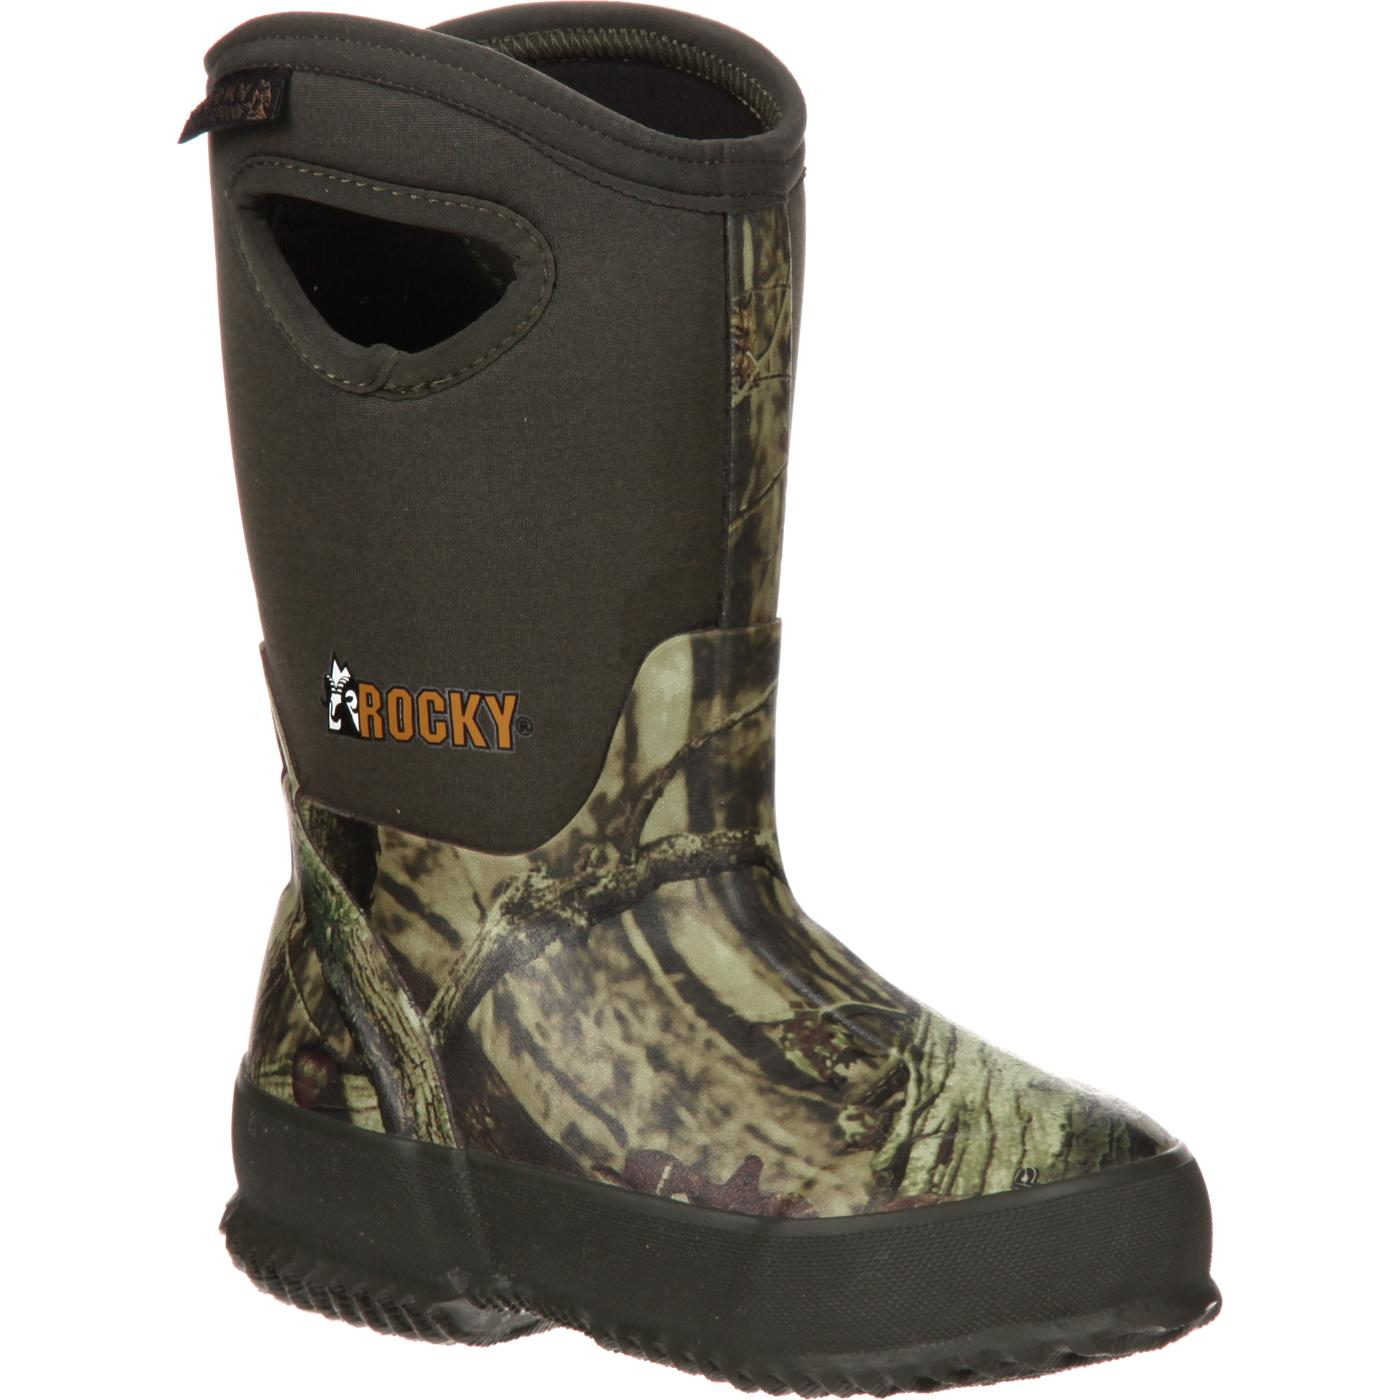 Kids Outdoor Boots - Just Like Dad! Find Kids Hunting Boots